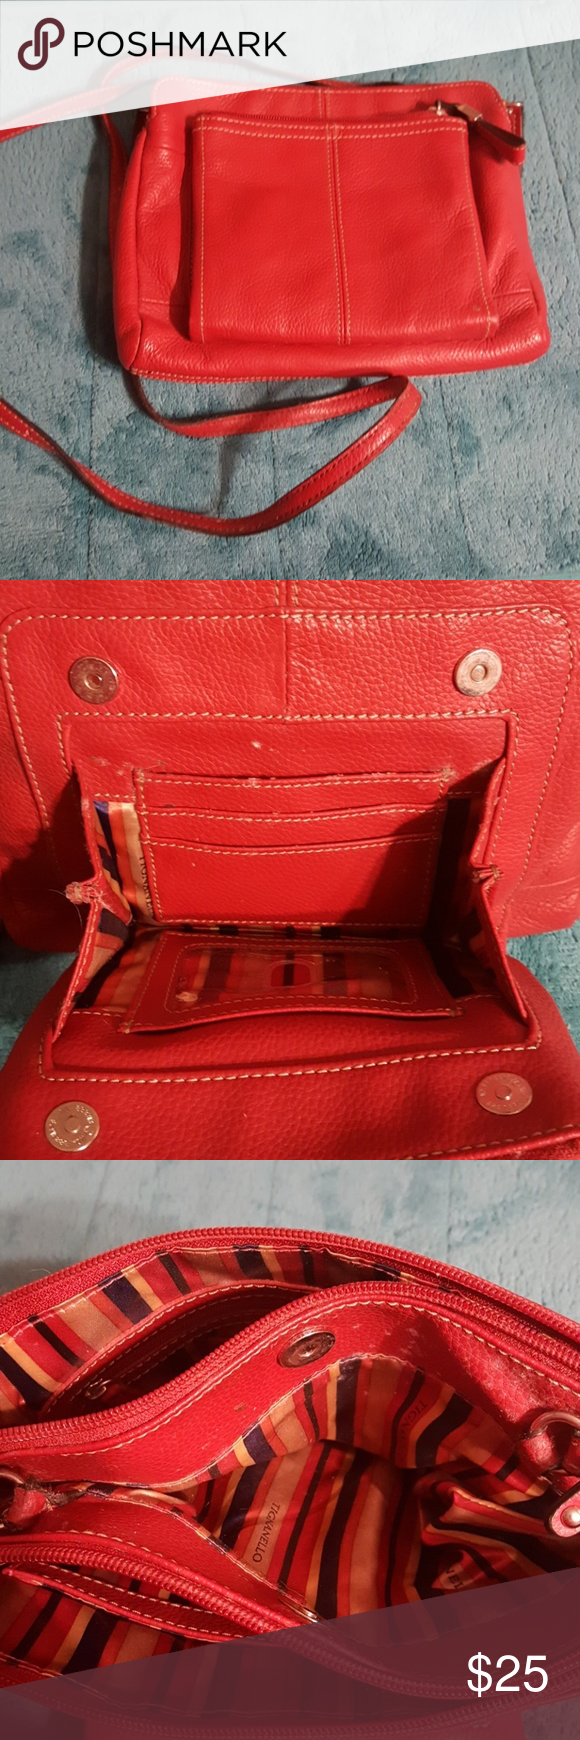 Tignanello Crossbody Purse Lightly Used Great Condition Leather Built In Wallet Means You